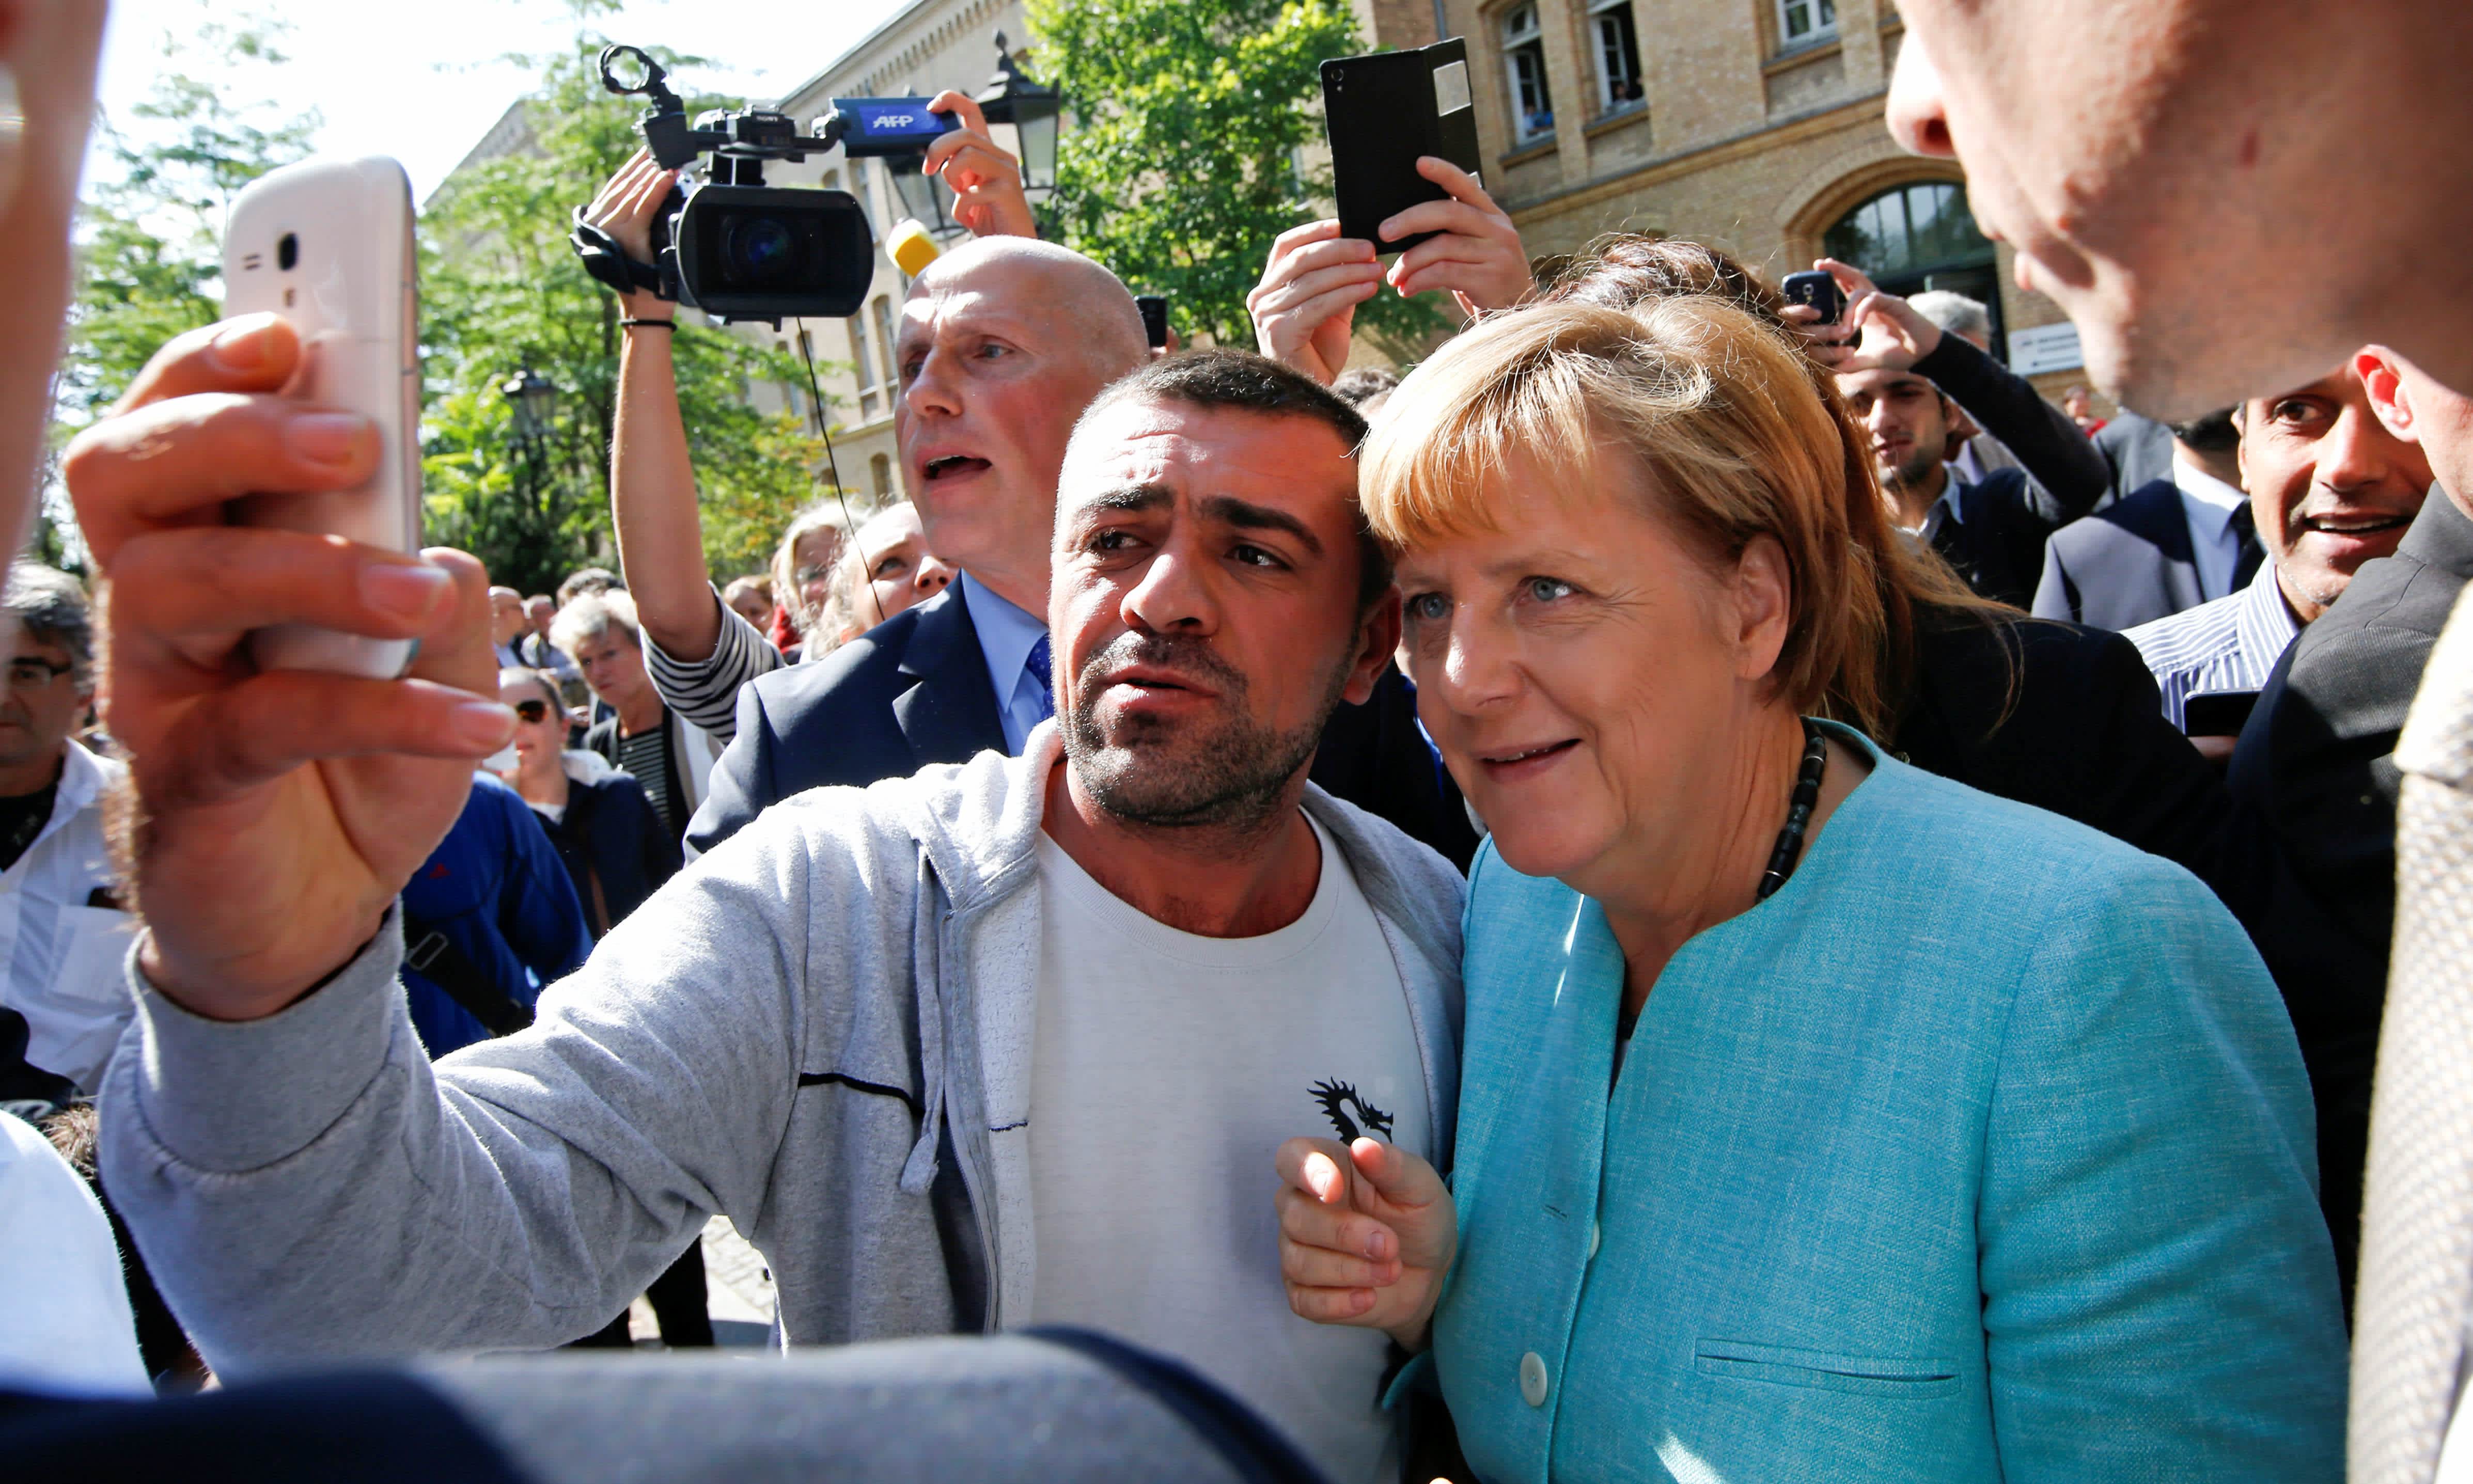 A migrant takes a selfie with German Chancellor Angela Merkel outside a refugee camp near the Federal Office for Migration and Refugees after registration at Berlin's Spandau district, Germany September 10, 2015 (REUTERS/FABRIZIO BENSCH)